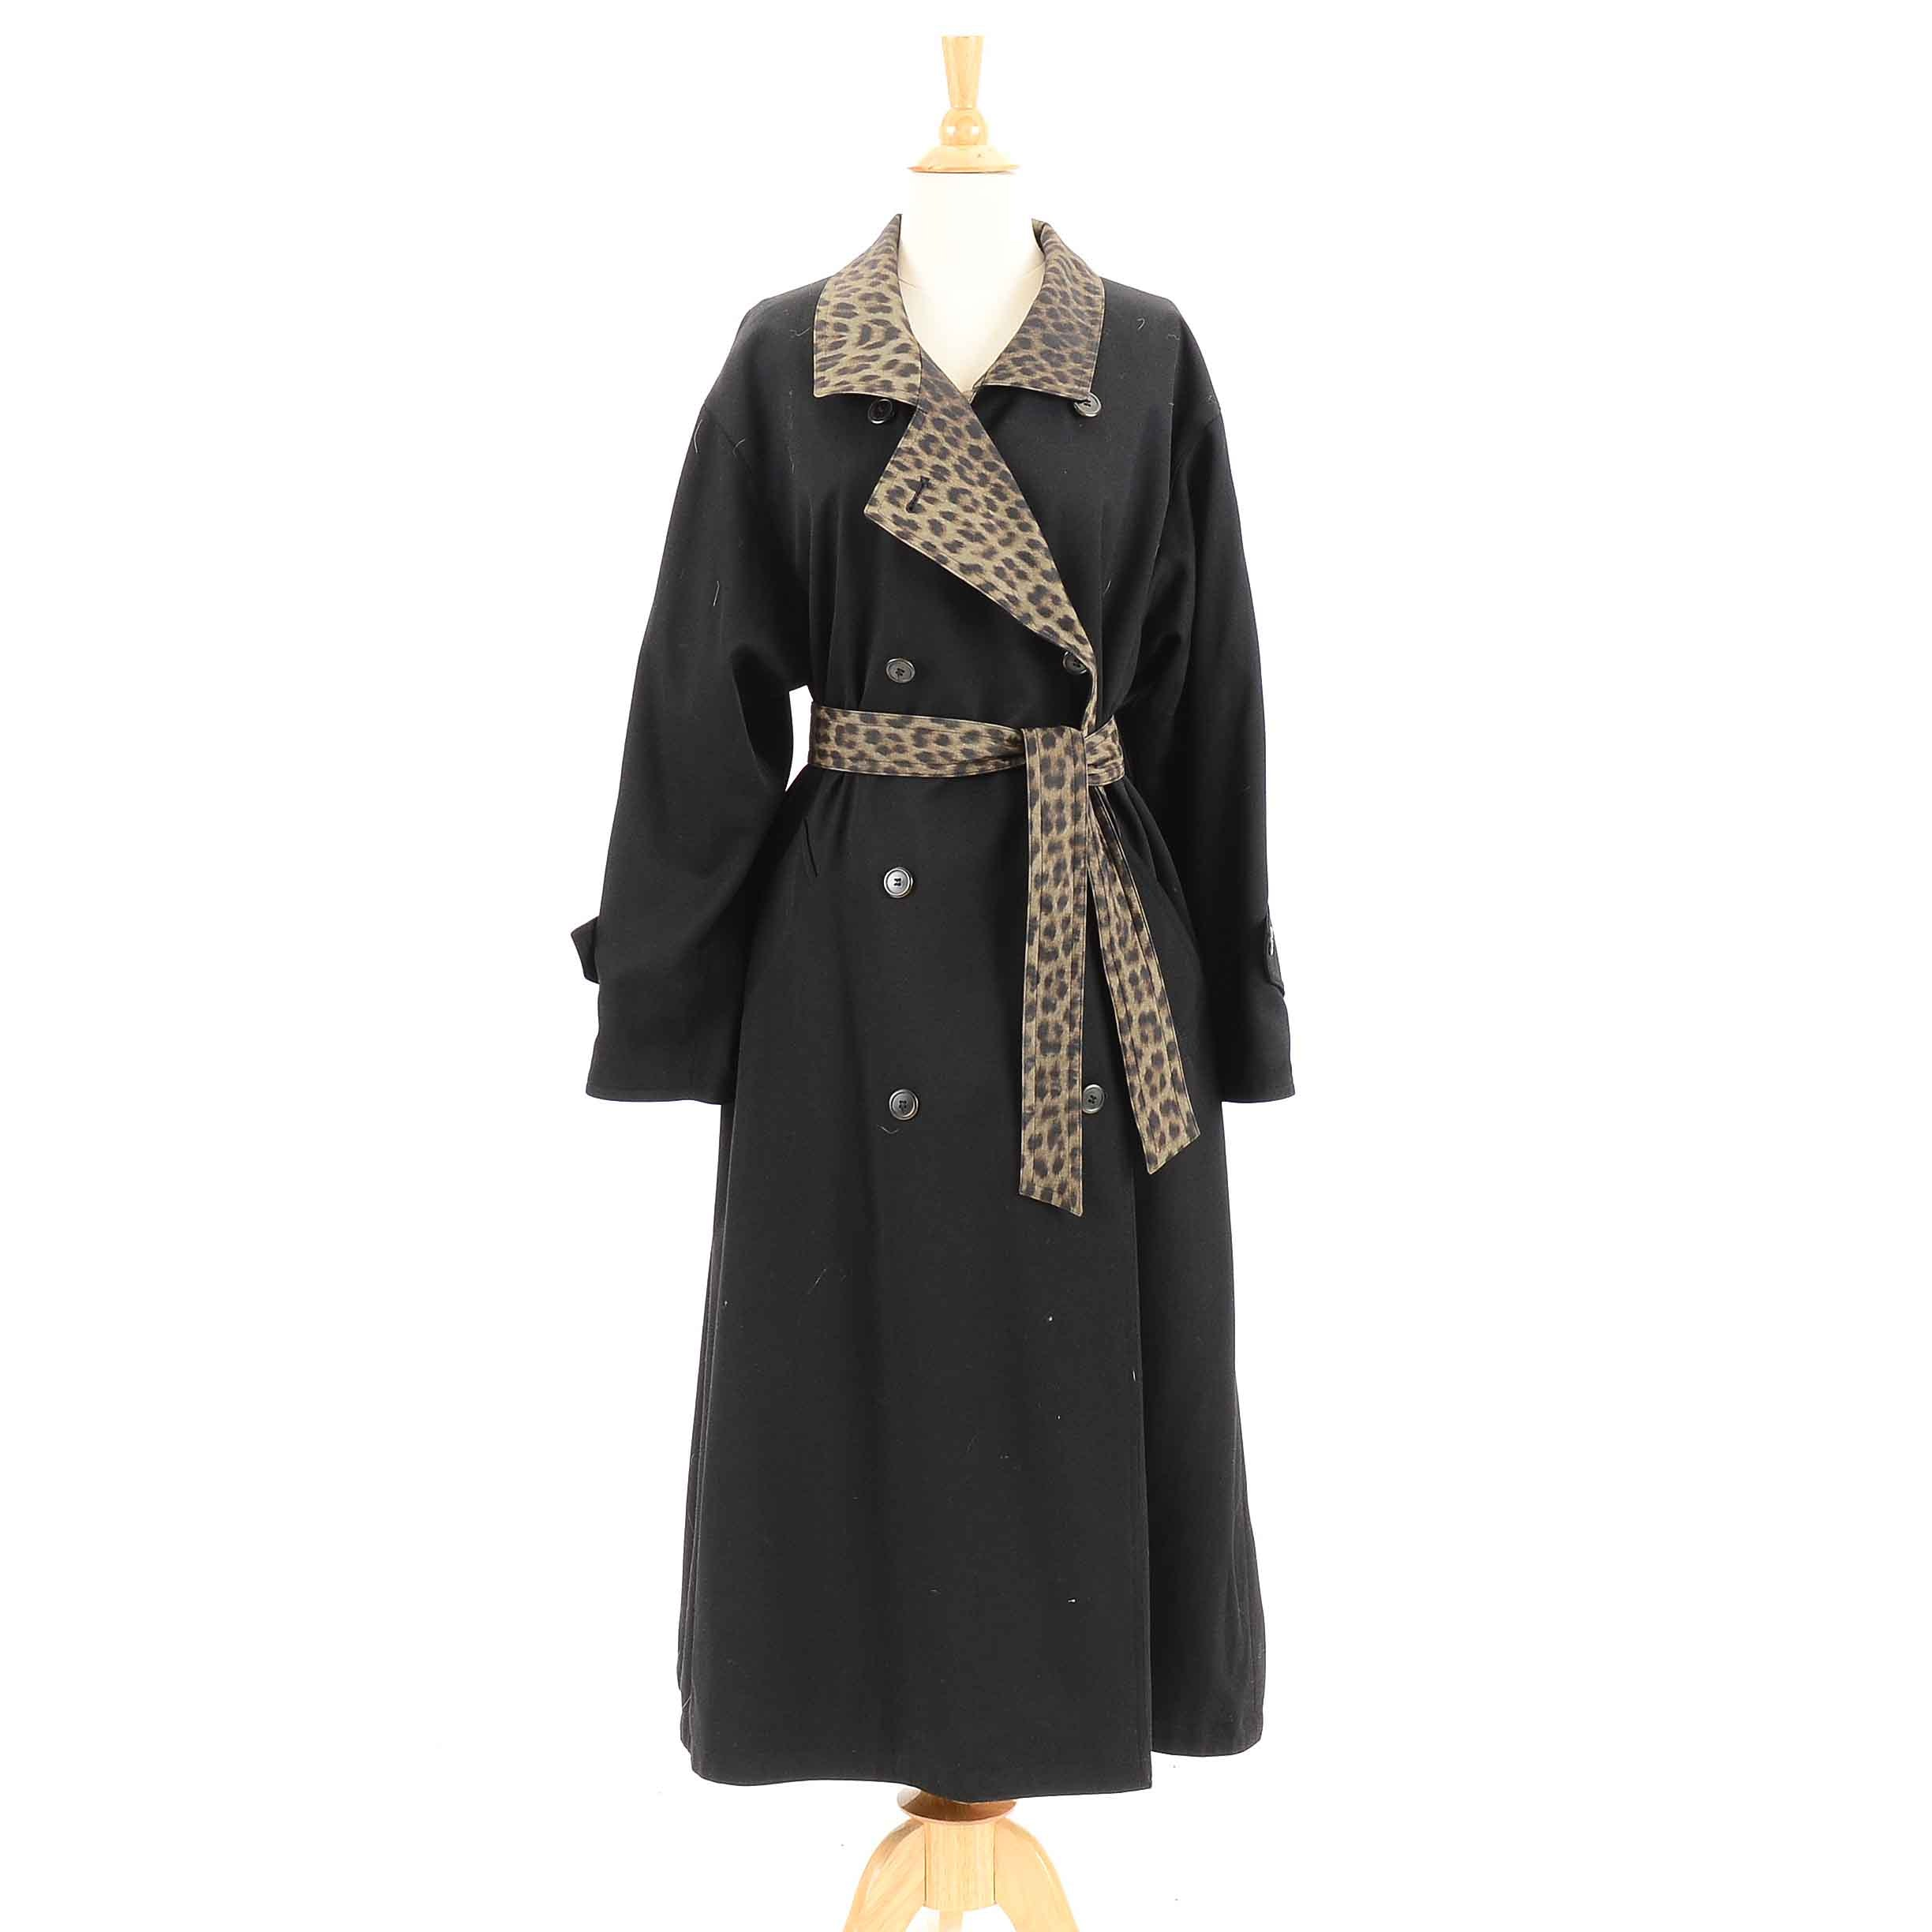 Women's Vintage Double-Breasted Trench Coat